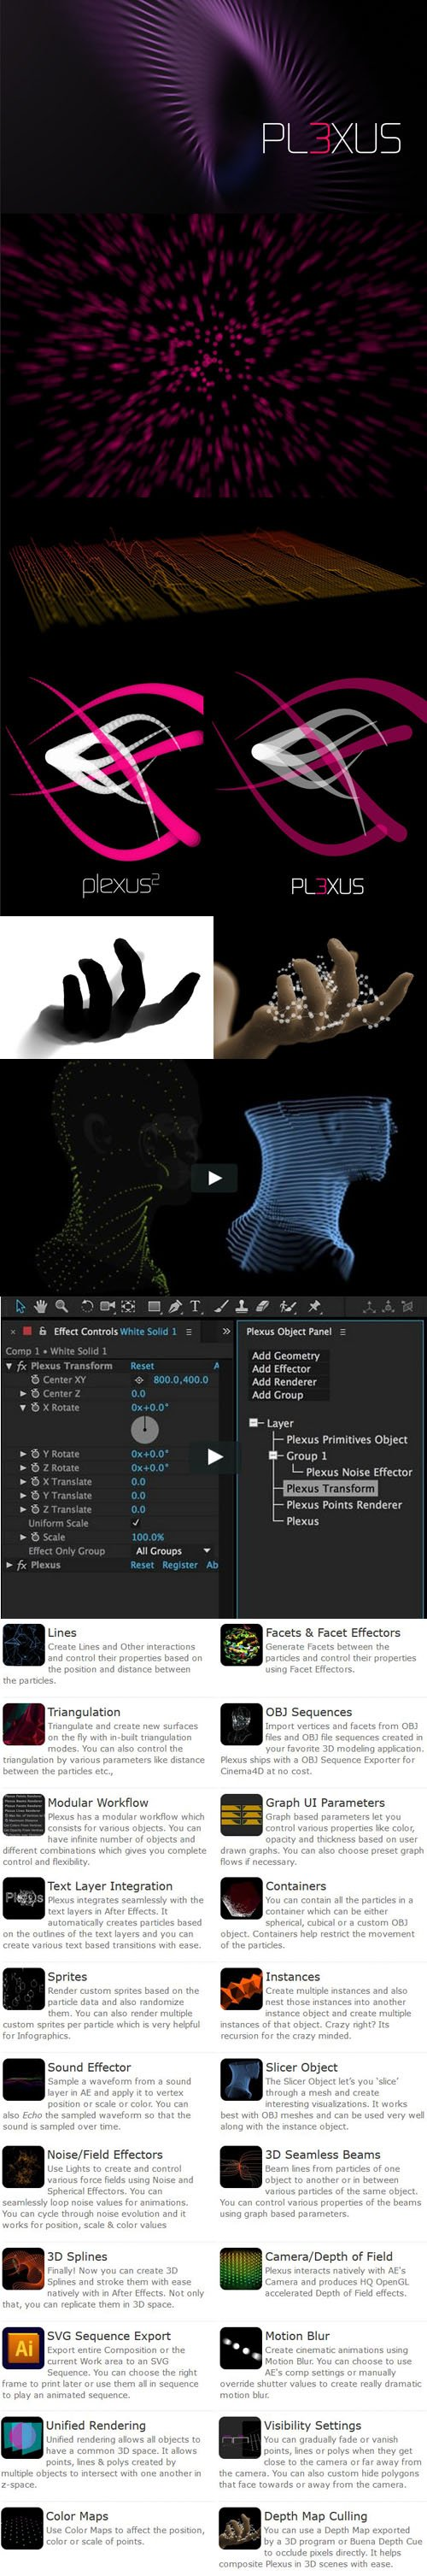 Rowbyte Plexus 3.1.13 Plugin for Adobe After Effects